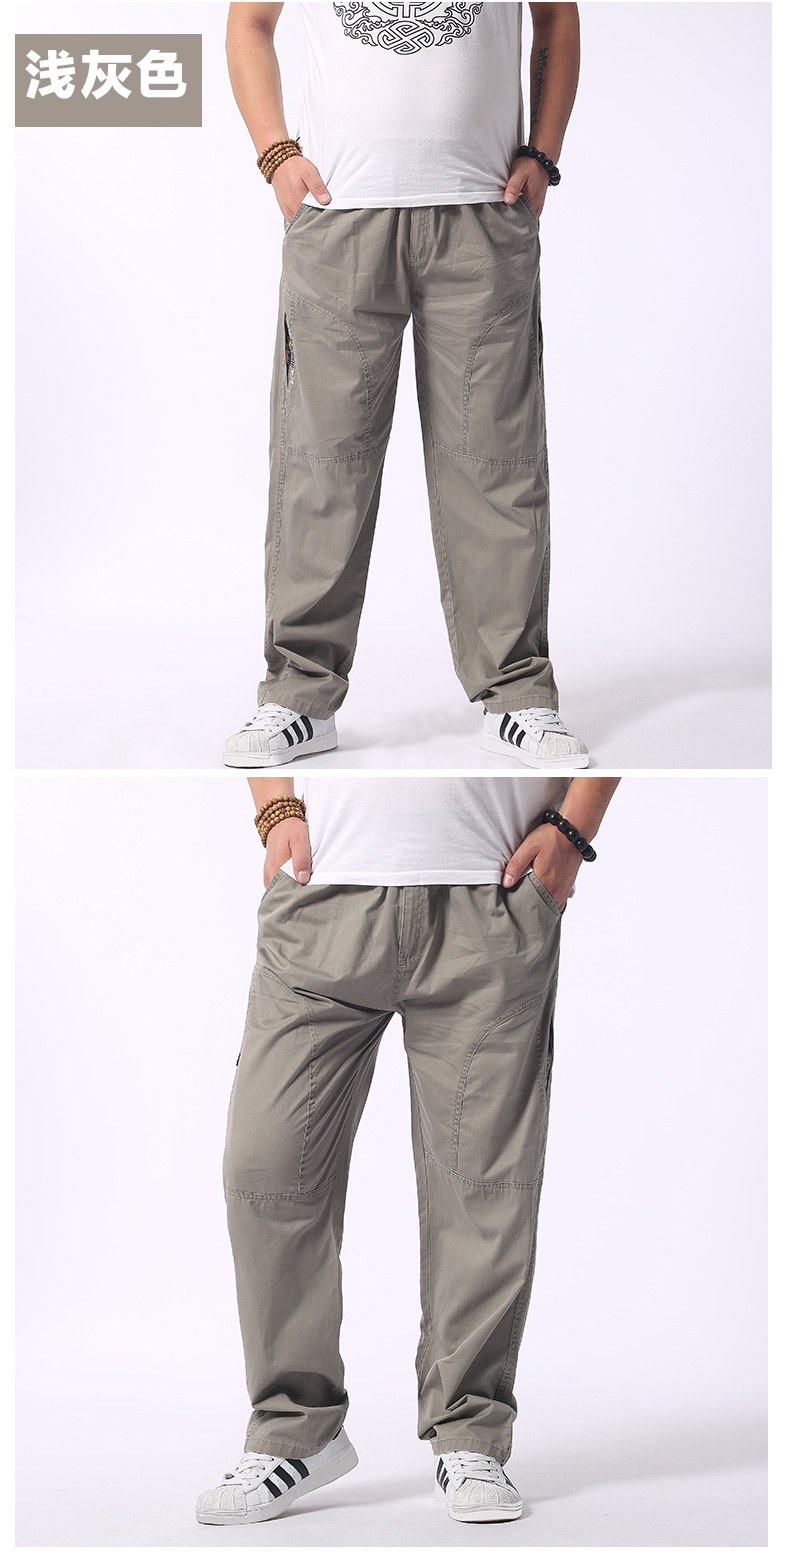 Man Loose Fitting Cargo Pants Yellow Black Gray Khaki  Overall For Mens Cotton Comfort Trousers Elastic Waist Pant American Apparel (10)